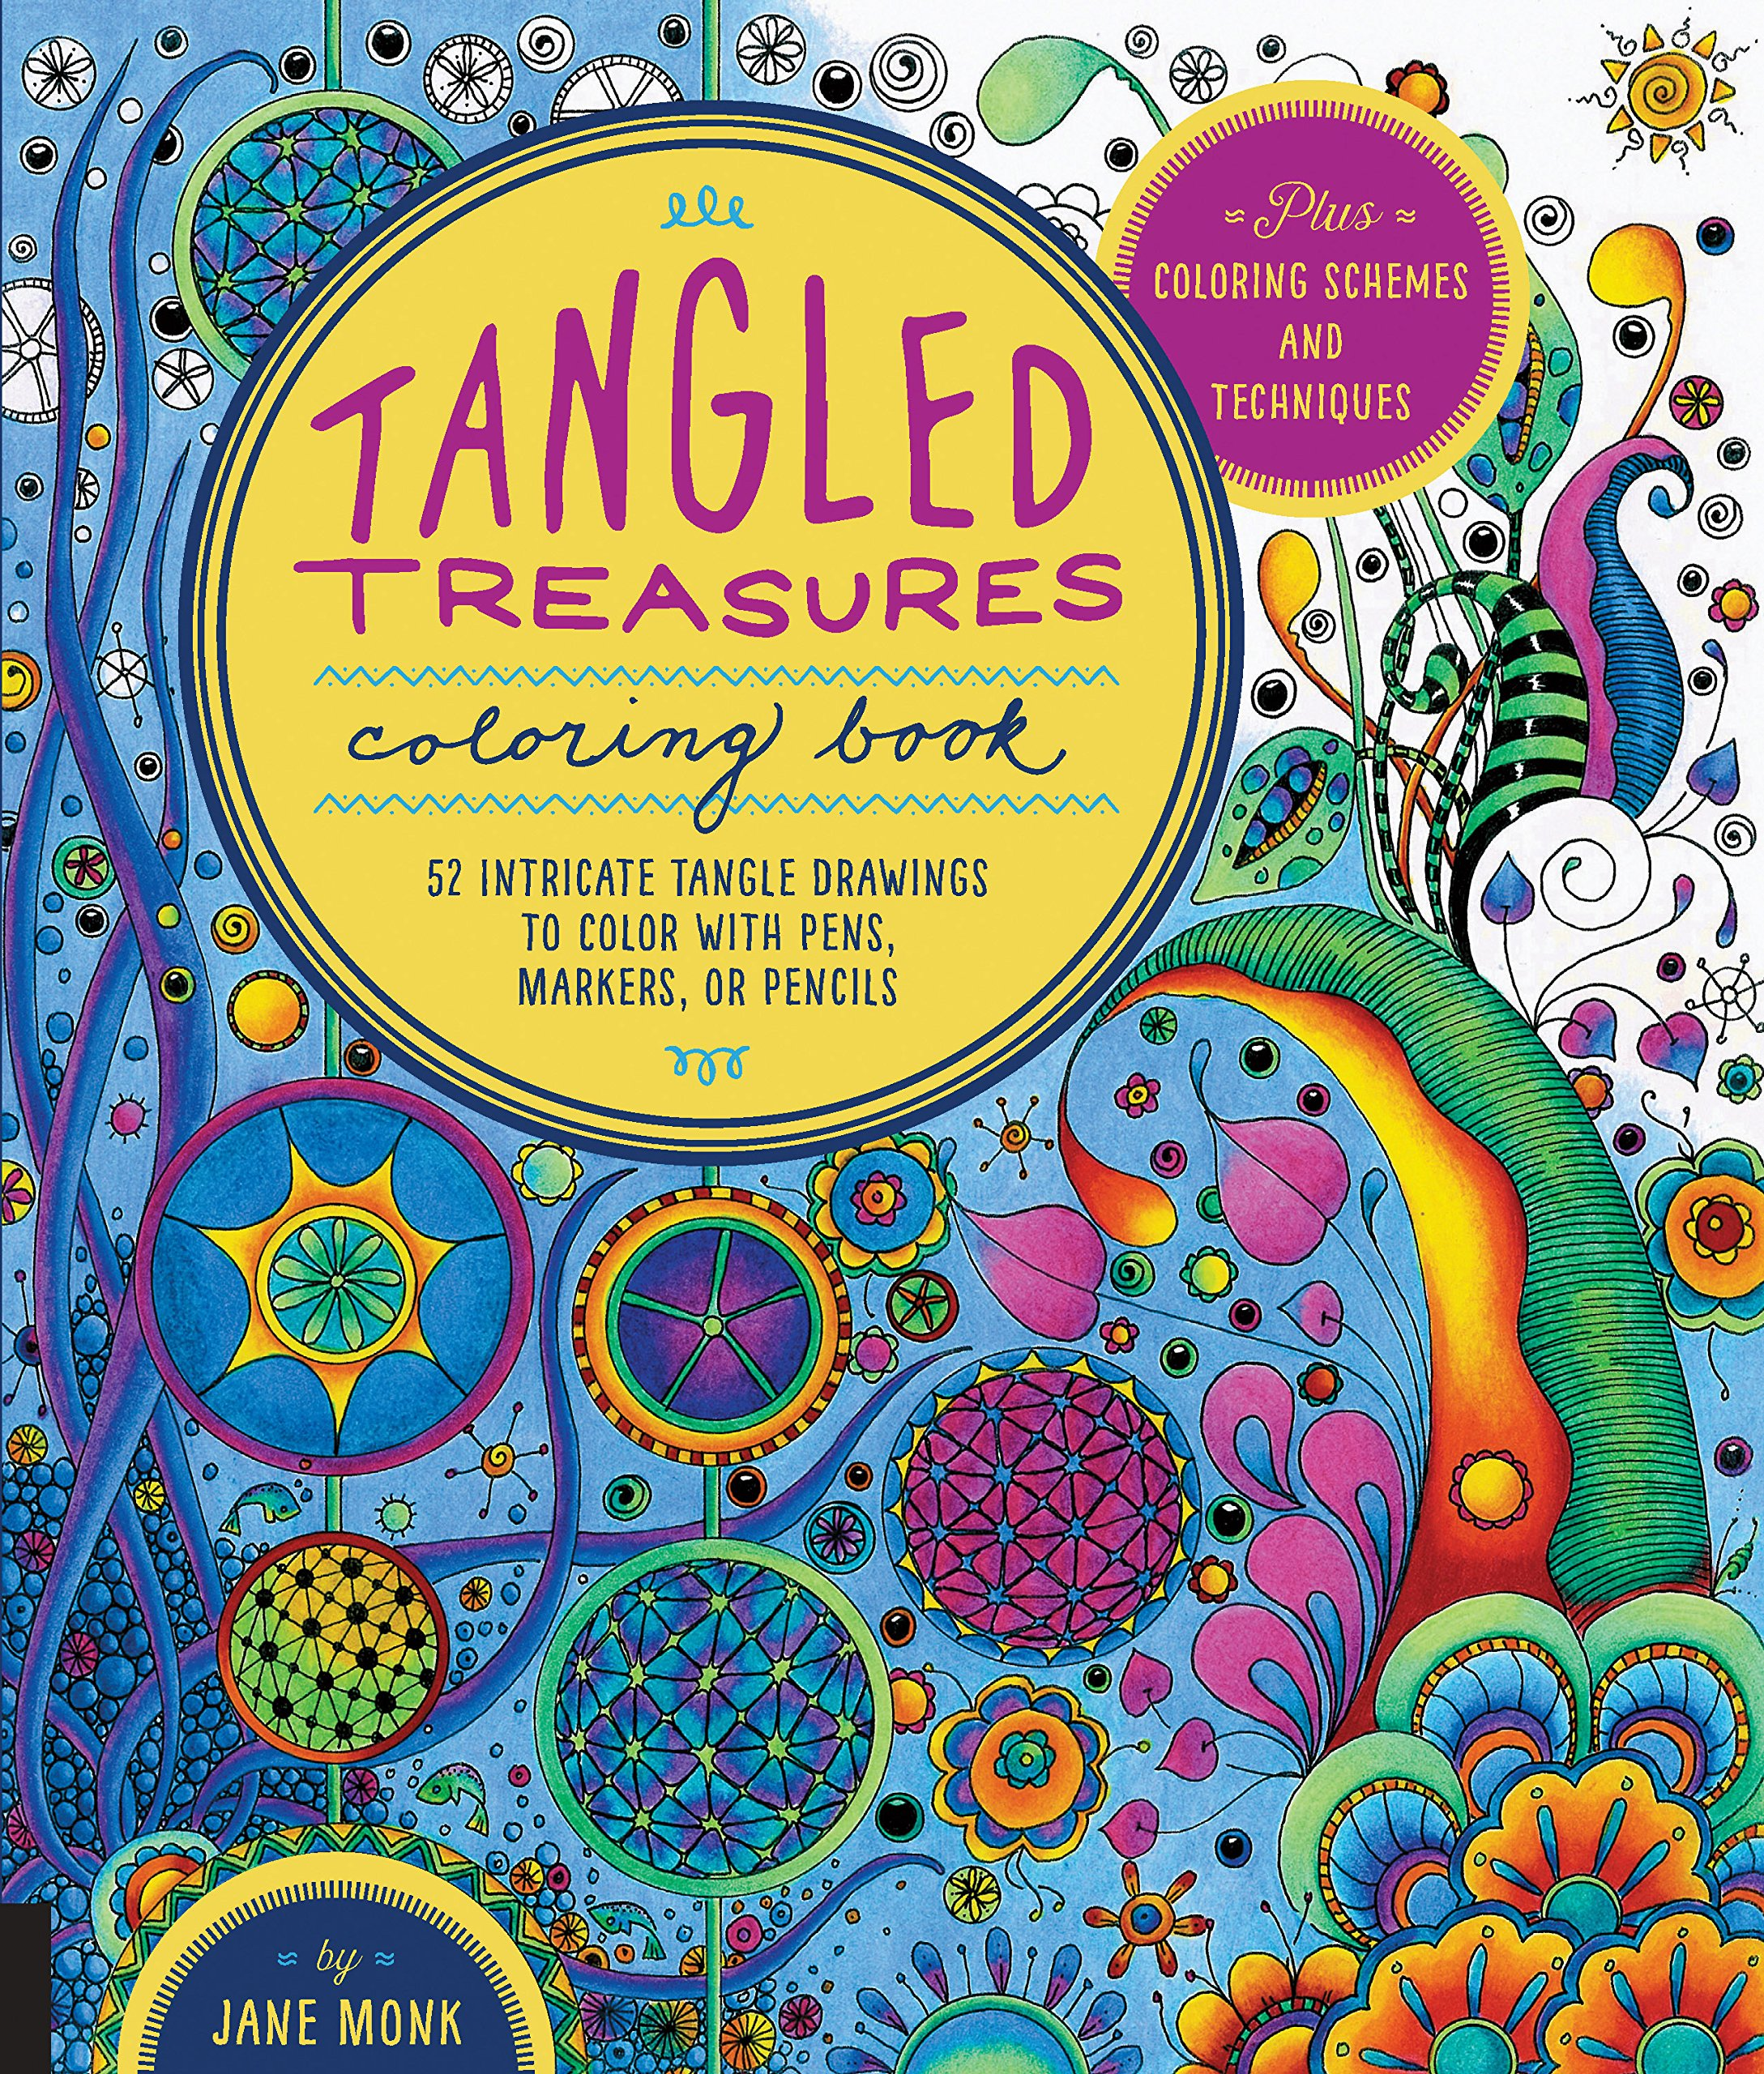 Tangled treasures coloring book 52 intricate tangle drawings to tangled treasures coloring book 52 intricate tangle drawings to color with pens markers or pencils plus coloring schemes and techniques tangled color fandeluxe Image collections